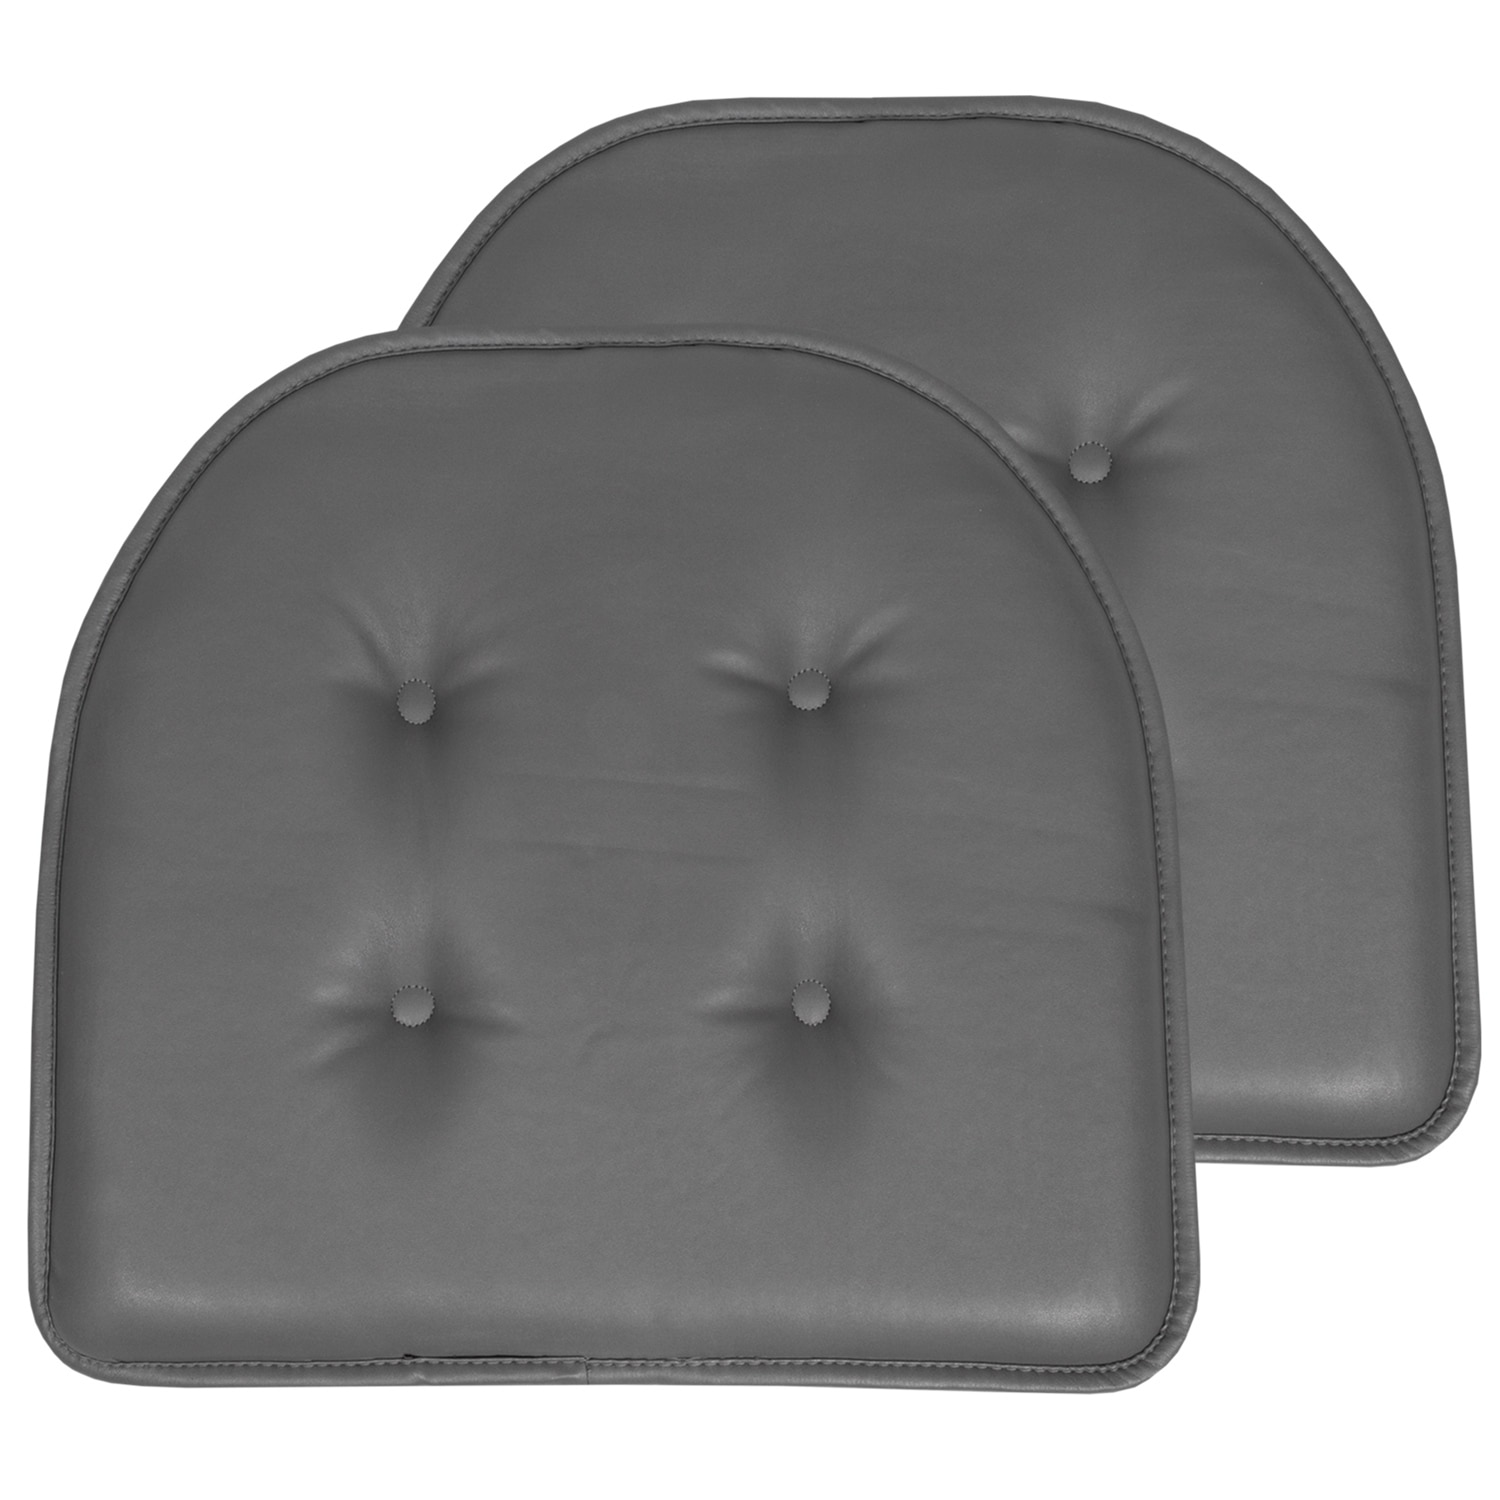 U Shaped Faux Leather Memory Foam Chair Pads Overstock 29655530